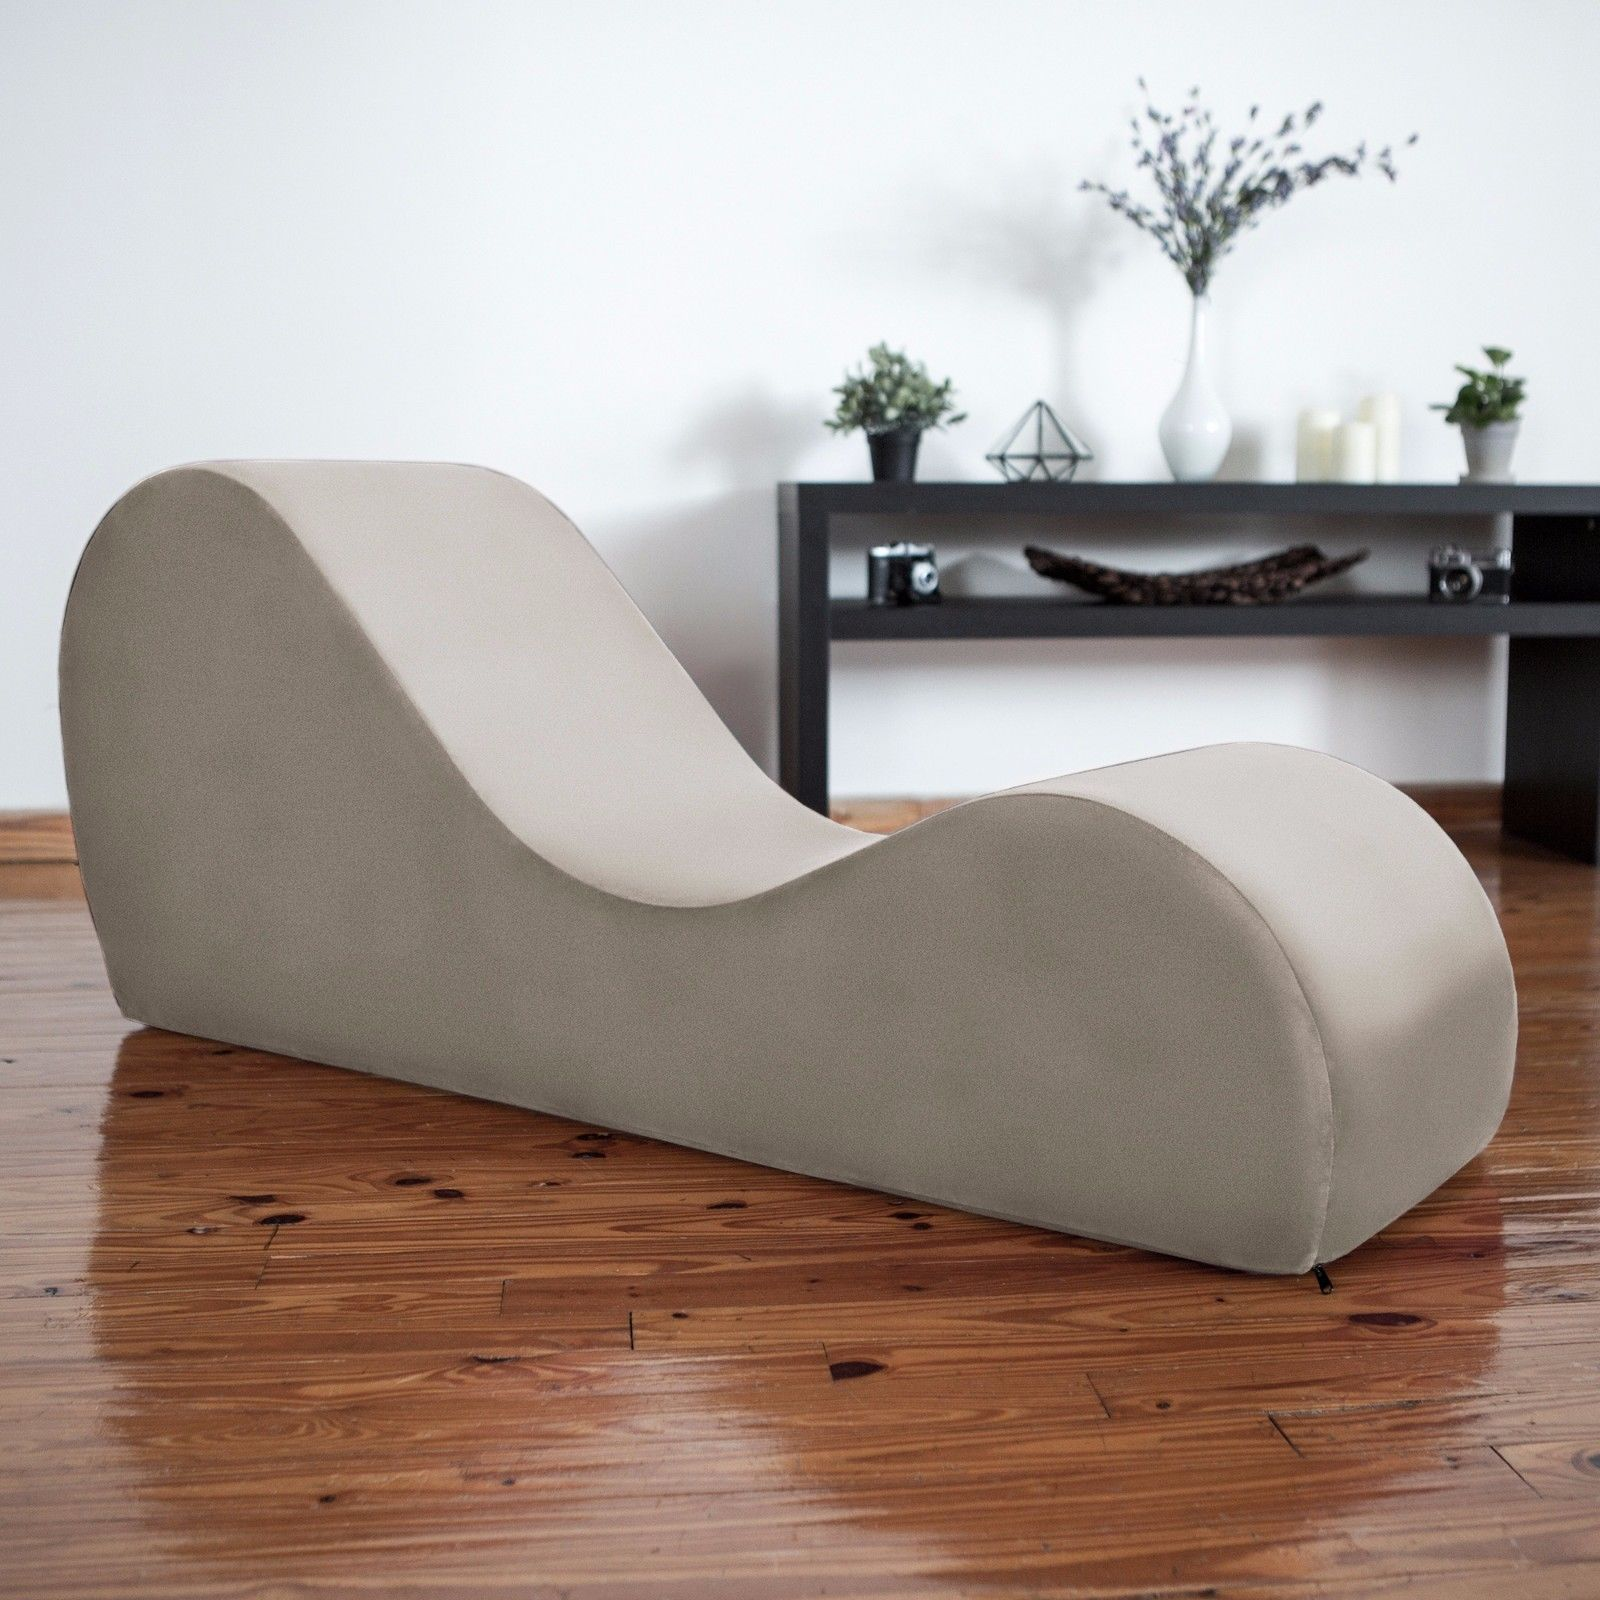 yoga sofa seven seater set designs liberator kama sutra chaise and tantra lounger champagne